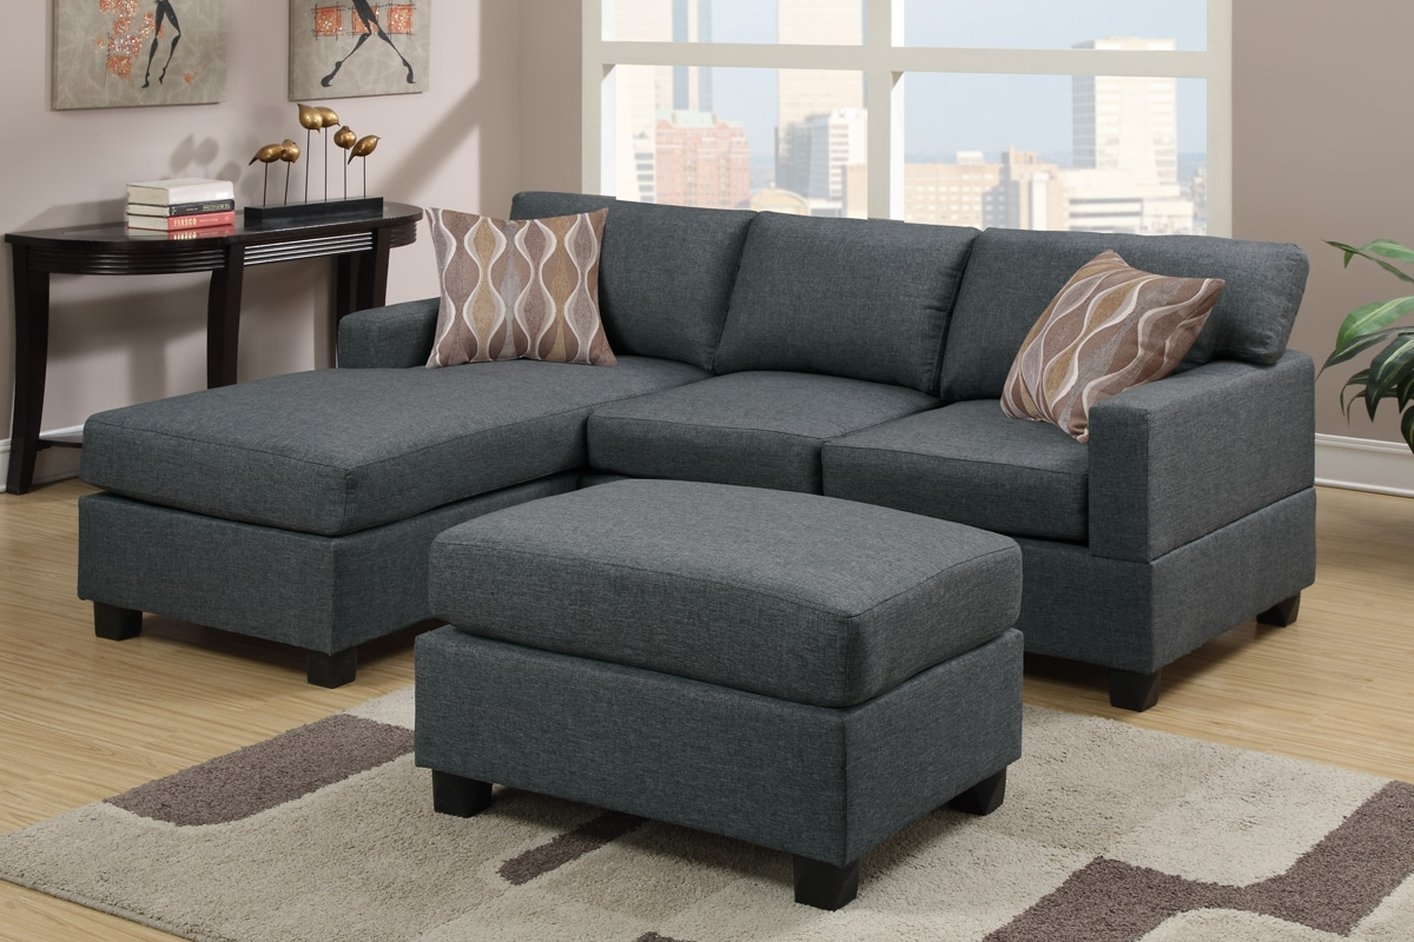 Sectional Sofa Design: Best Sectional Sofas With Ottoman Design Pertaining To Sofas With Ottoman (Image 8 of 10)